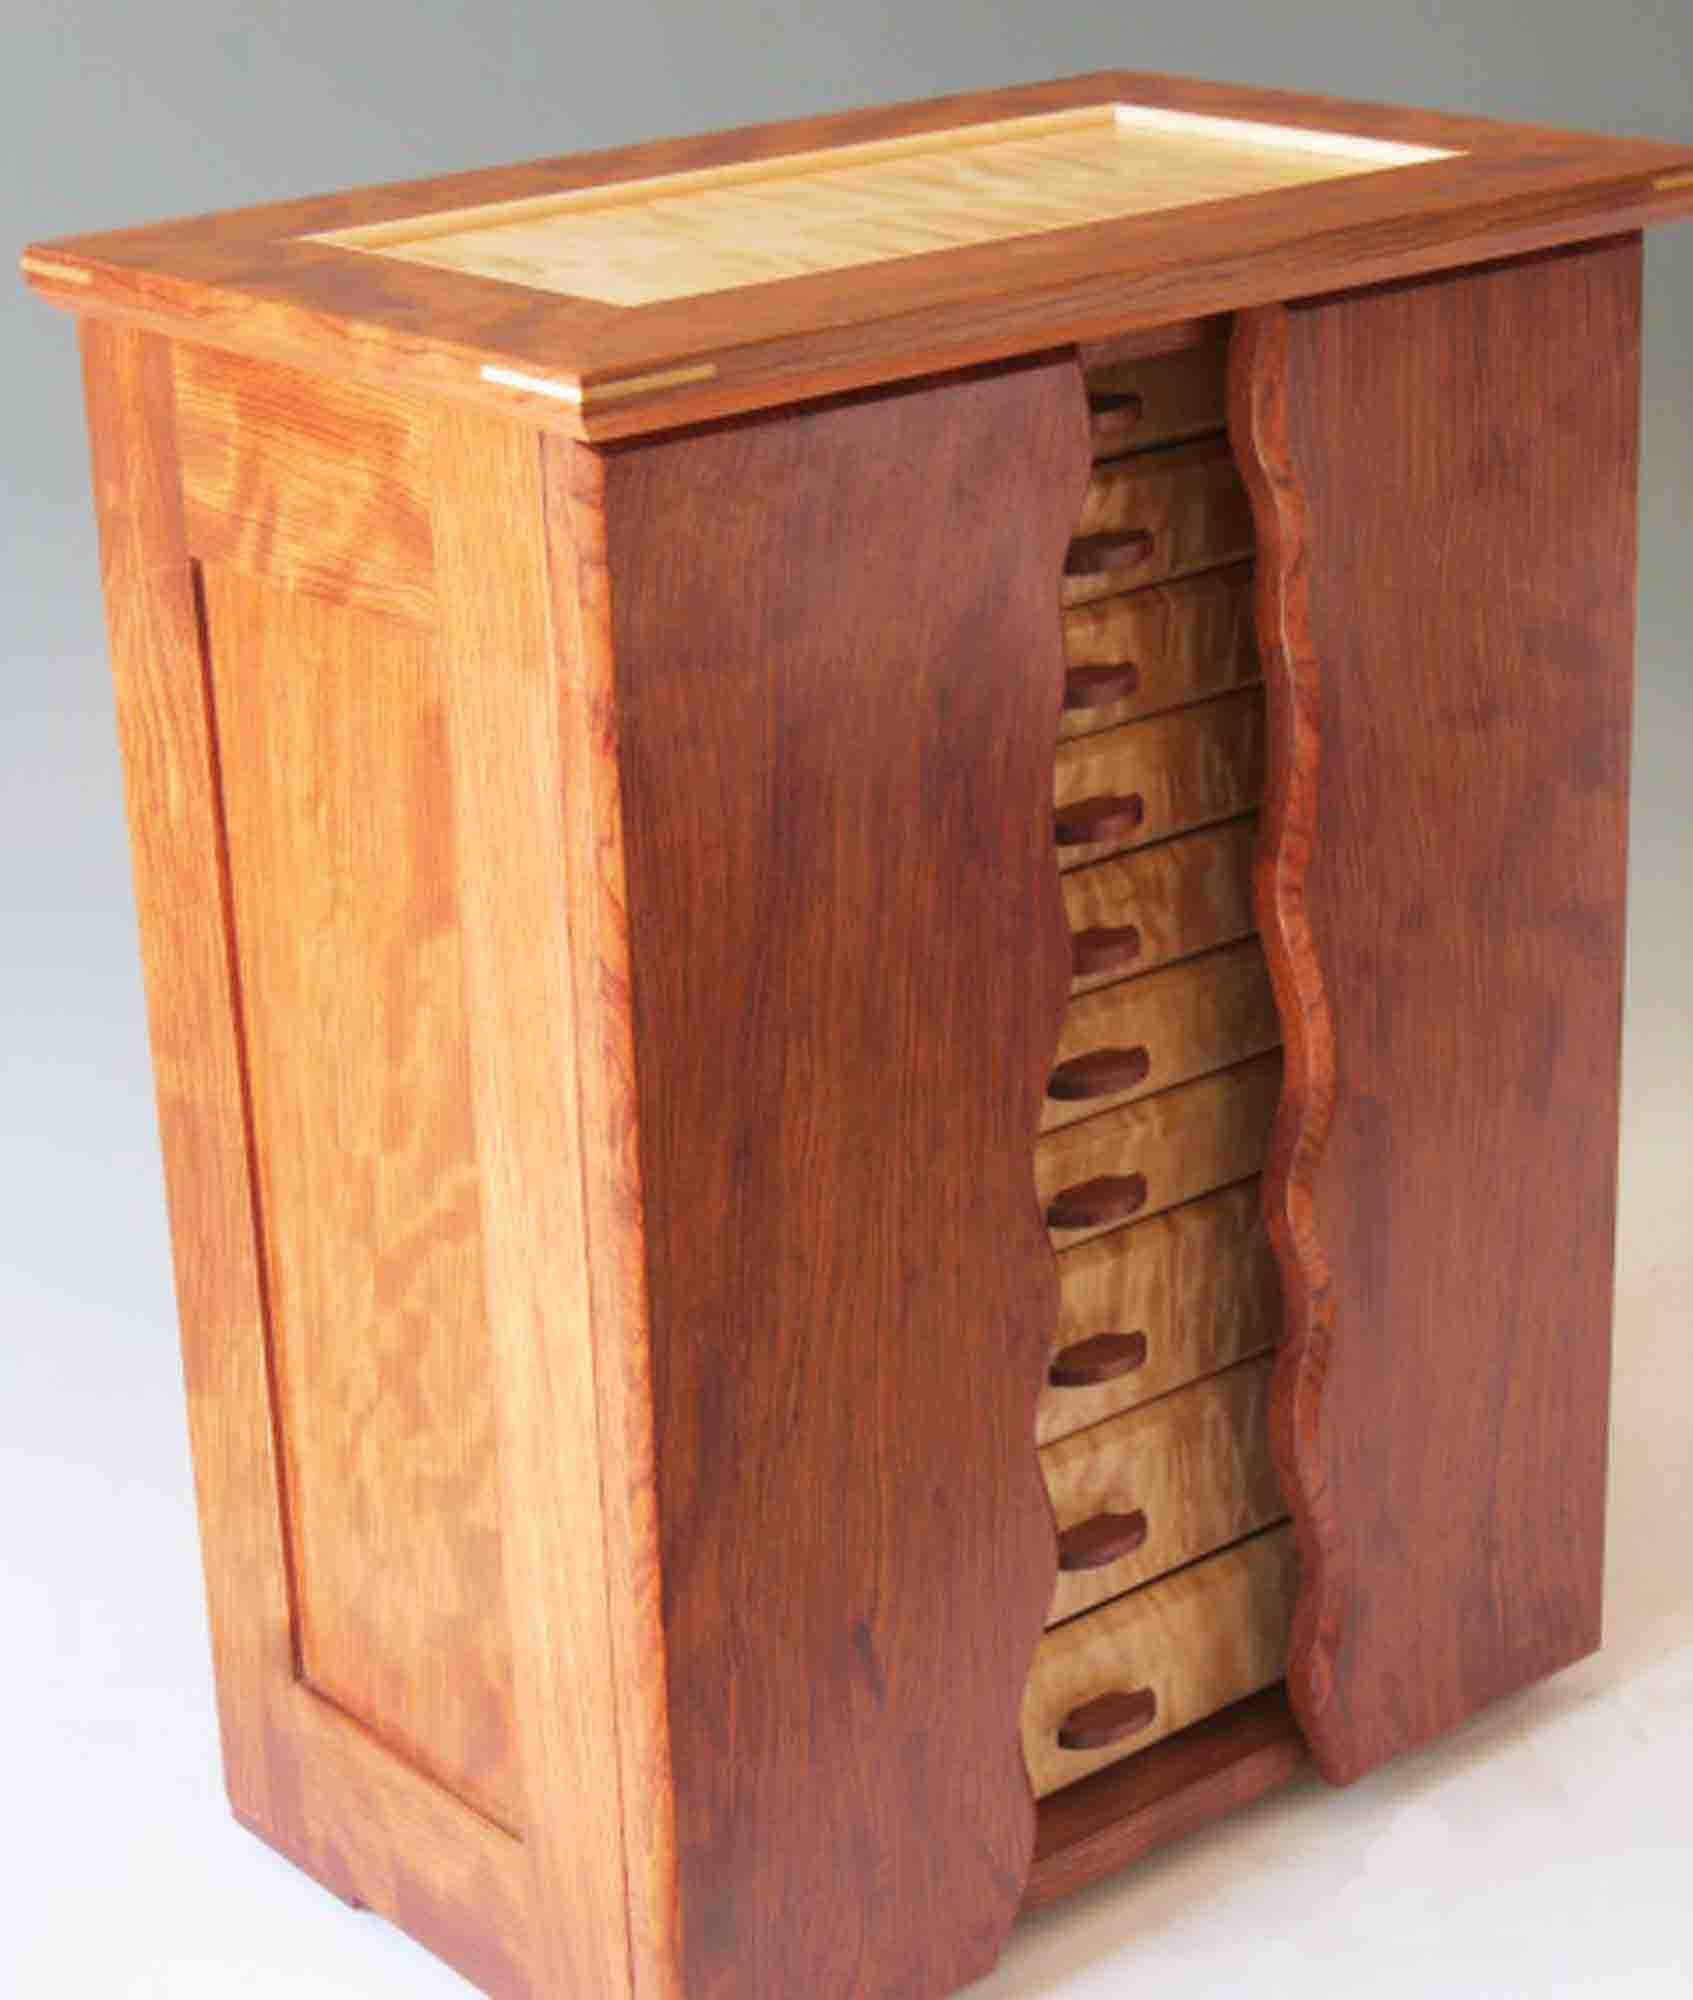 Necklace jewelry box a handmade jewelry box of fine woods for Wardrobe cabinet design woodworking plans